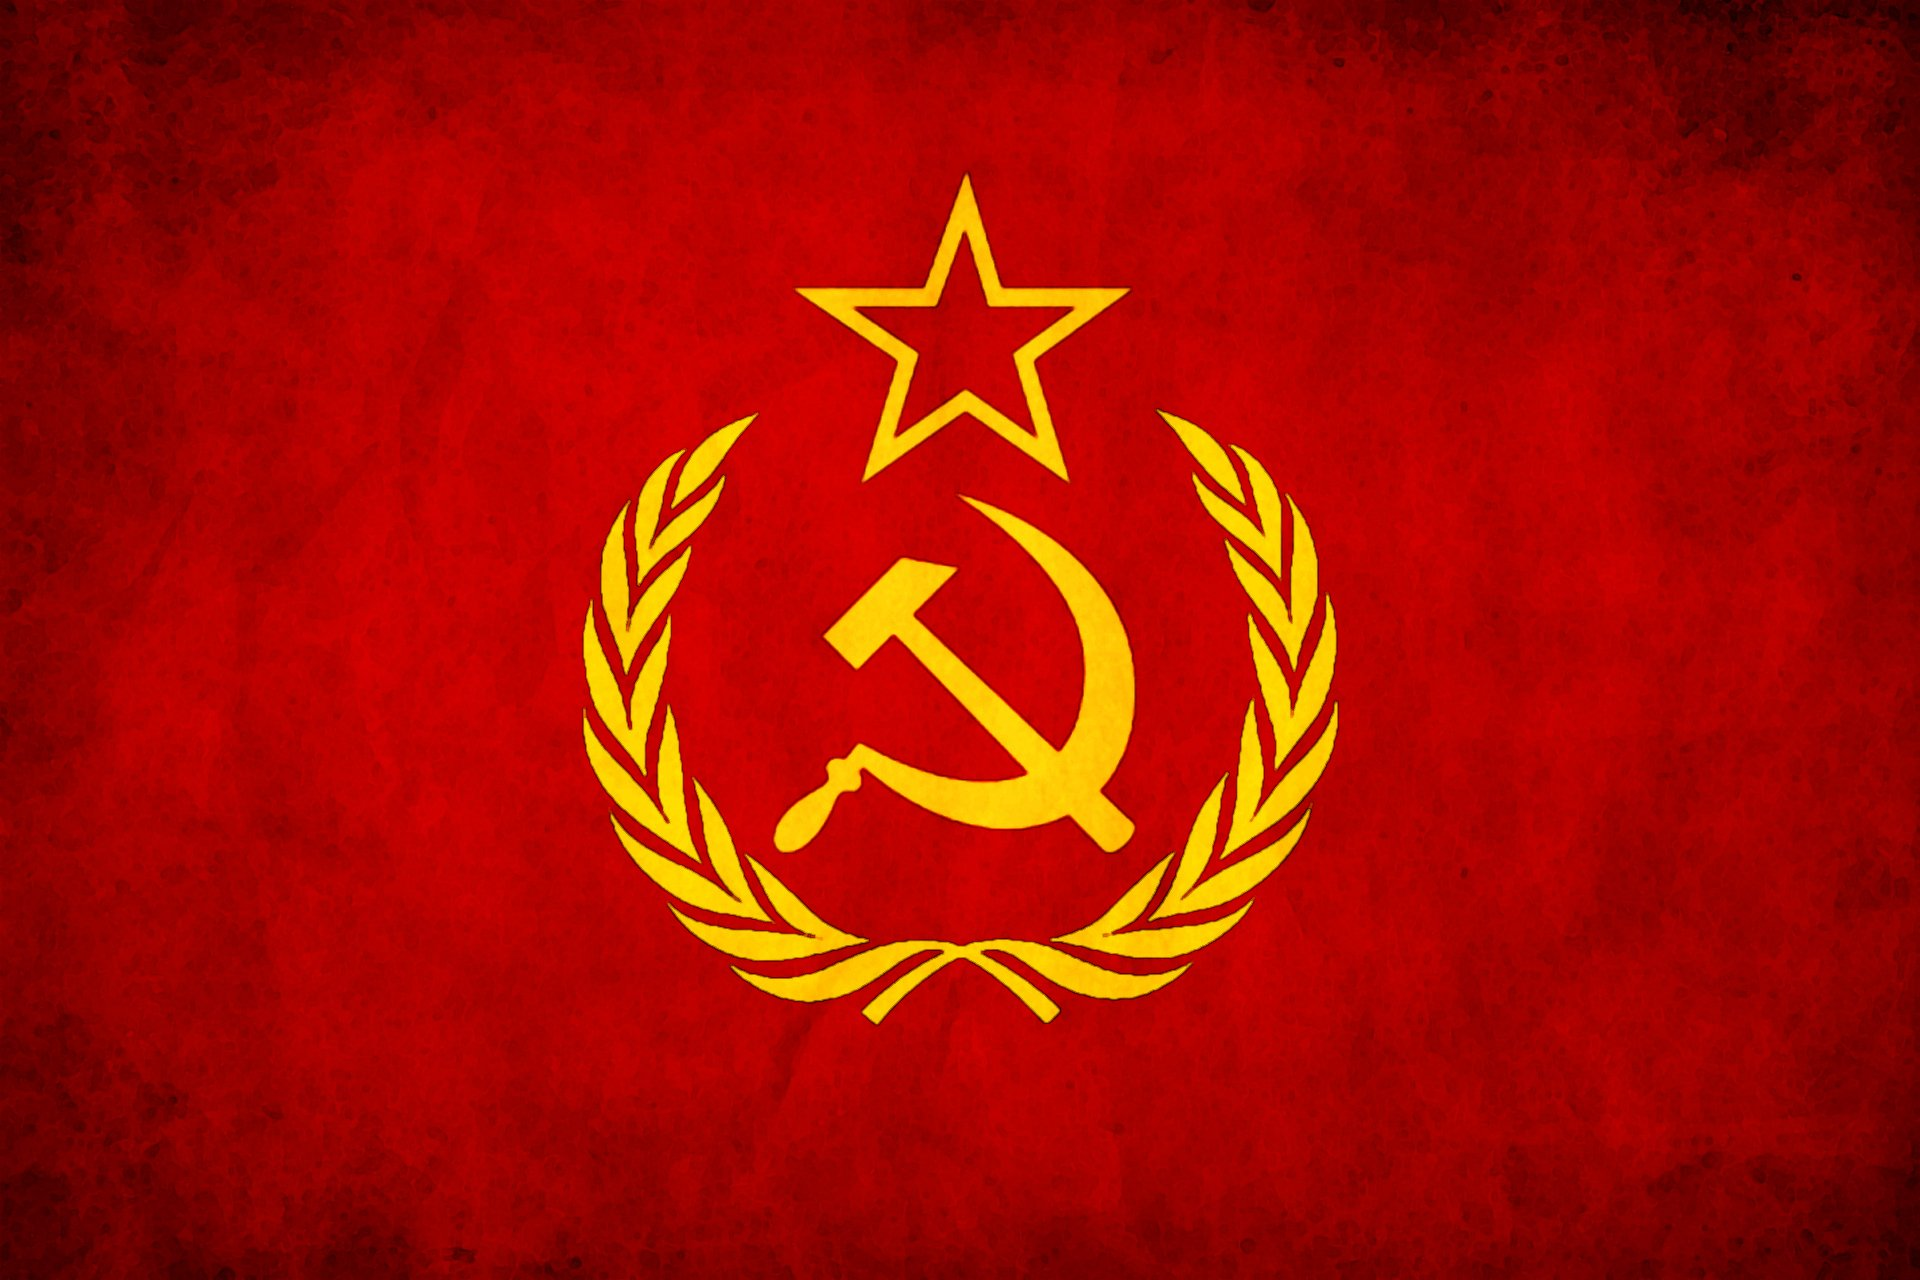 36 Communism HD Wallpapers | Background Images - Wallpaper ...